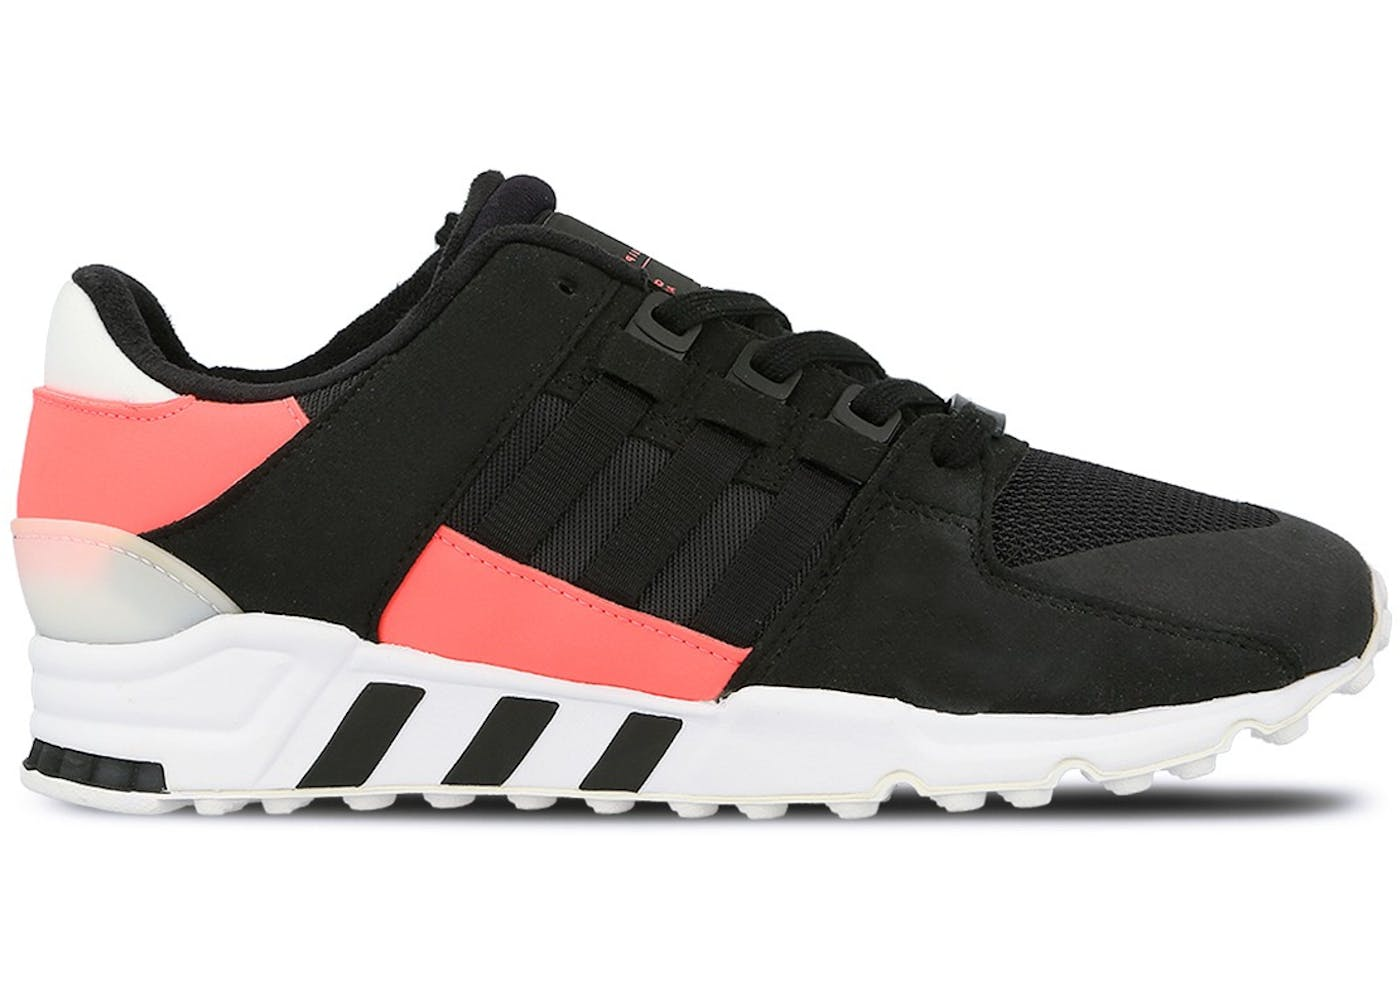 "adidas EQT Support ADV Primeknit ""Zebra Kicks Deals"